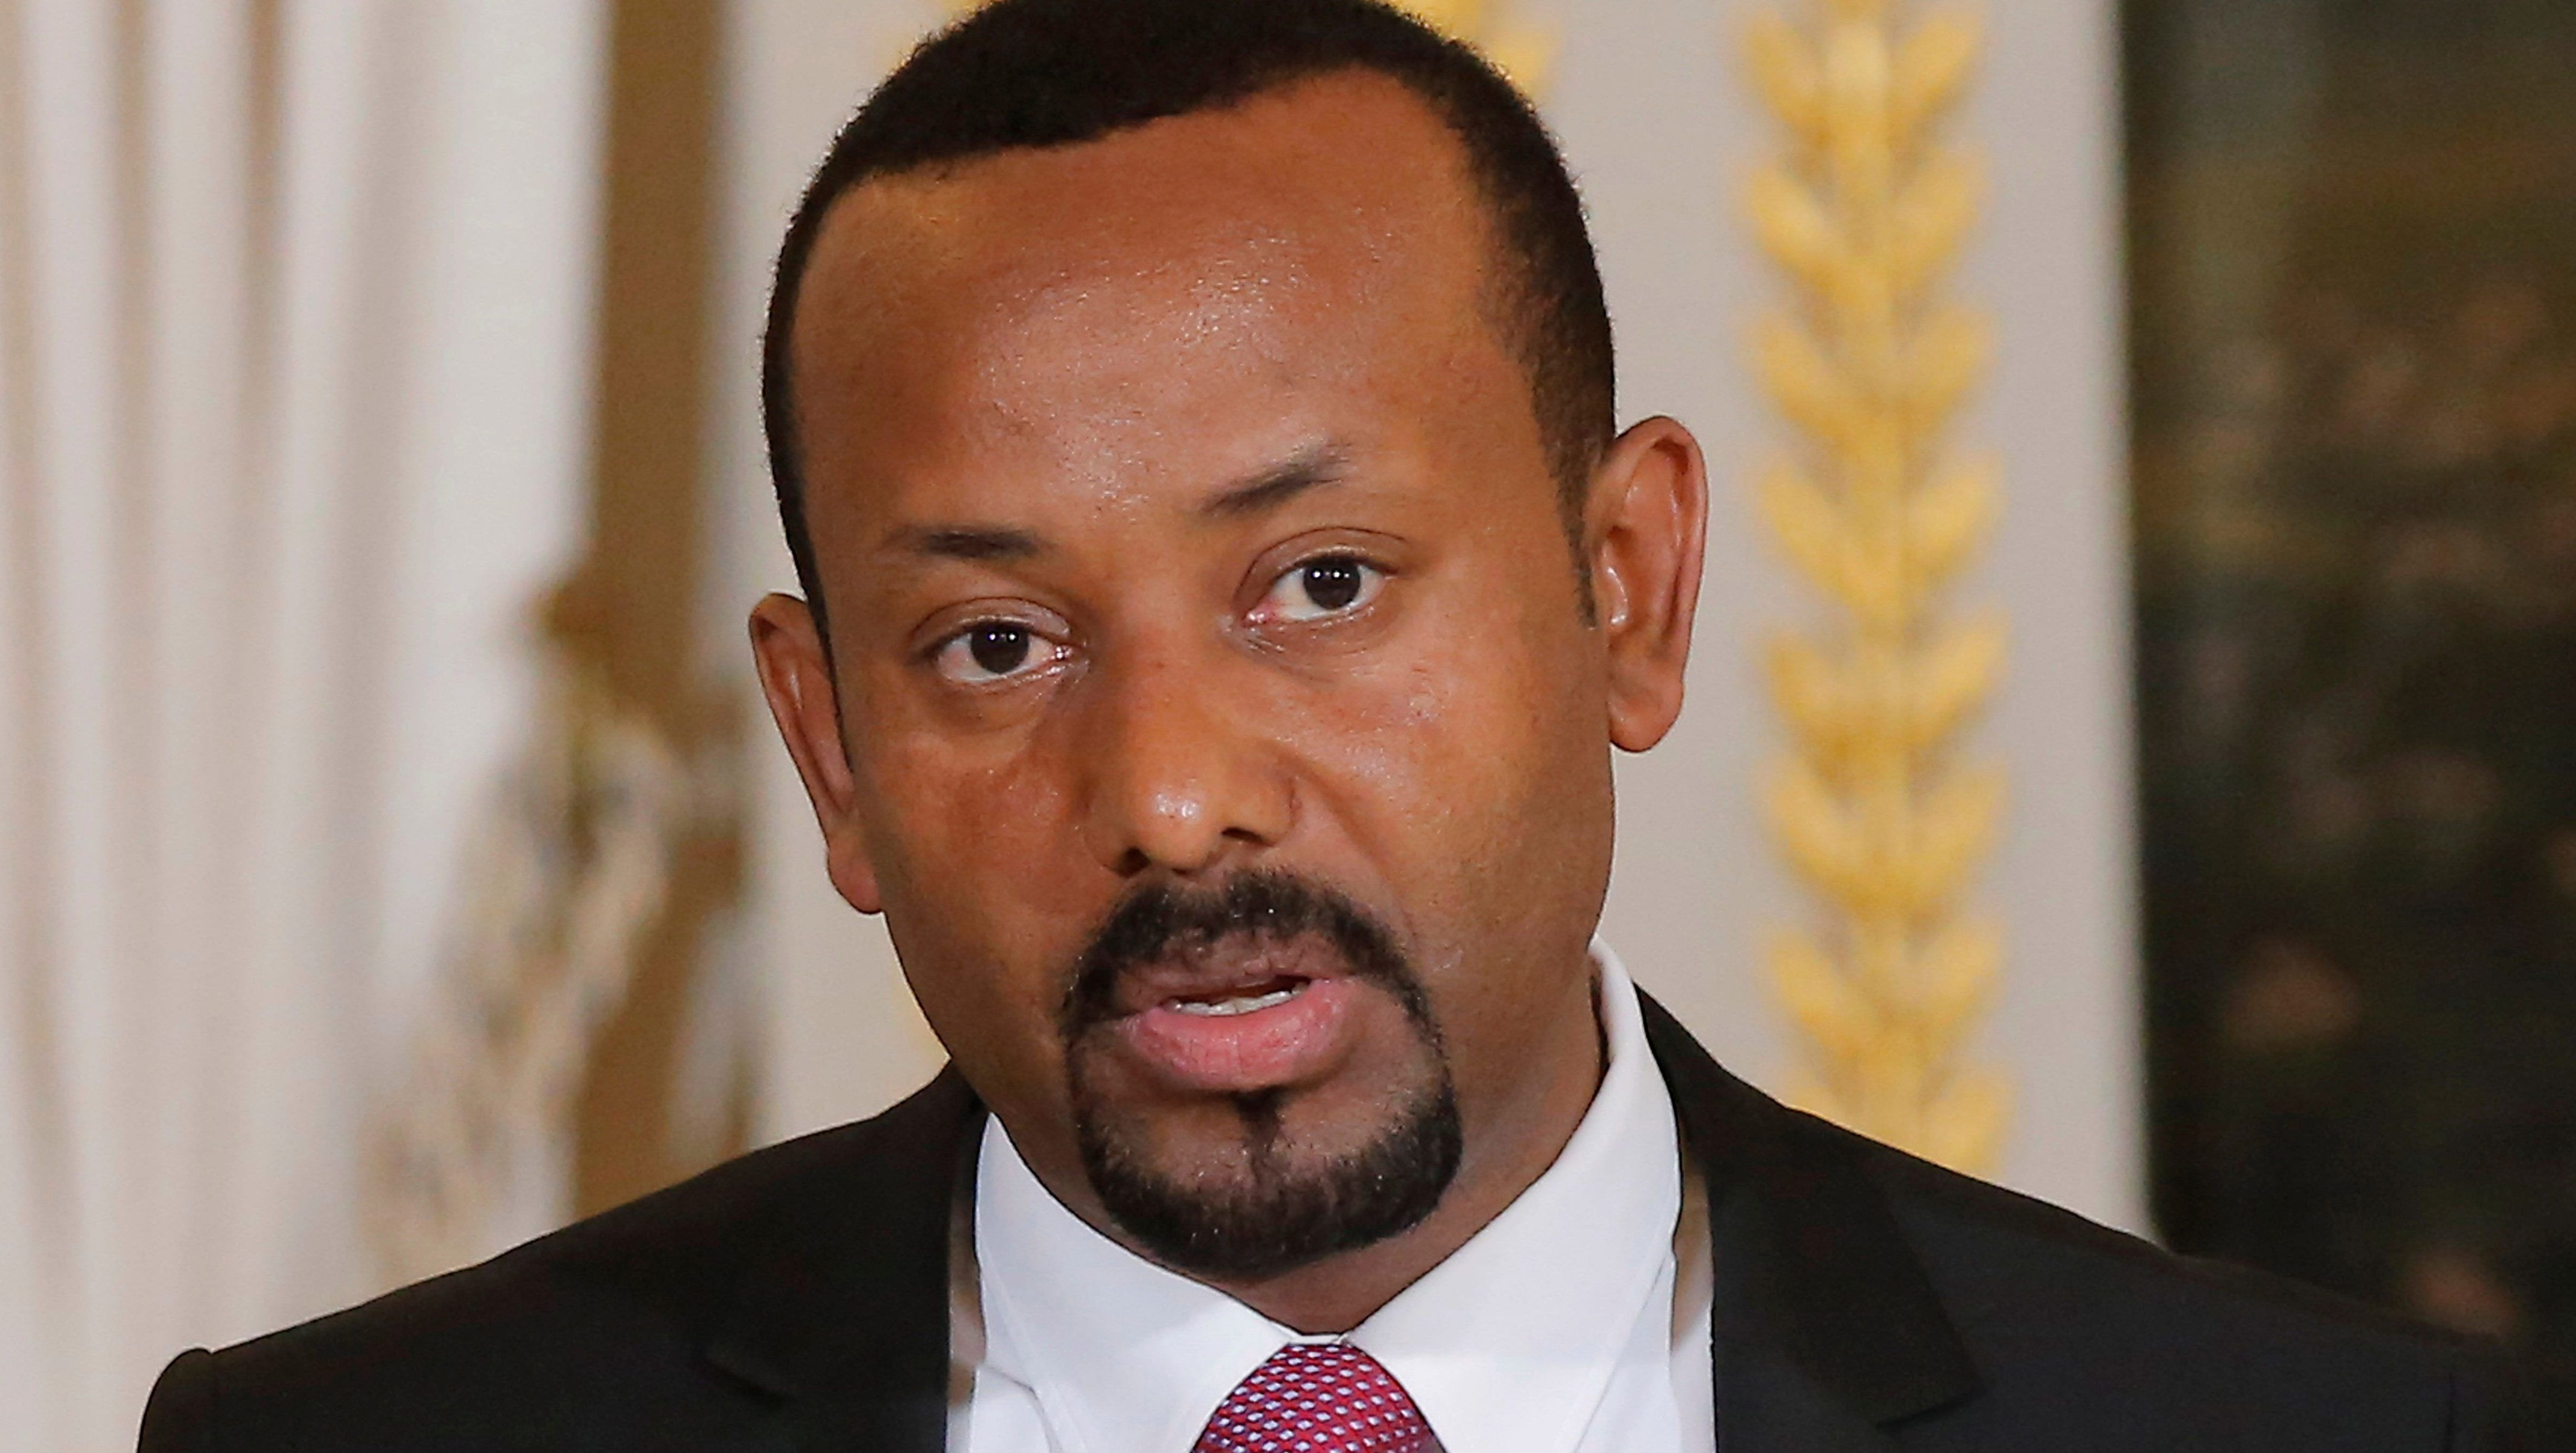 Ethiopia's decision to delay its election for Covid will have consequences for its democratic goals